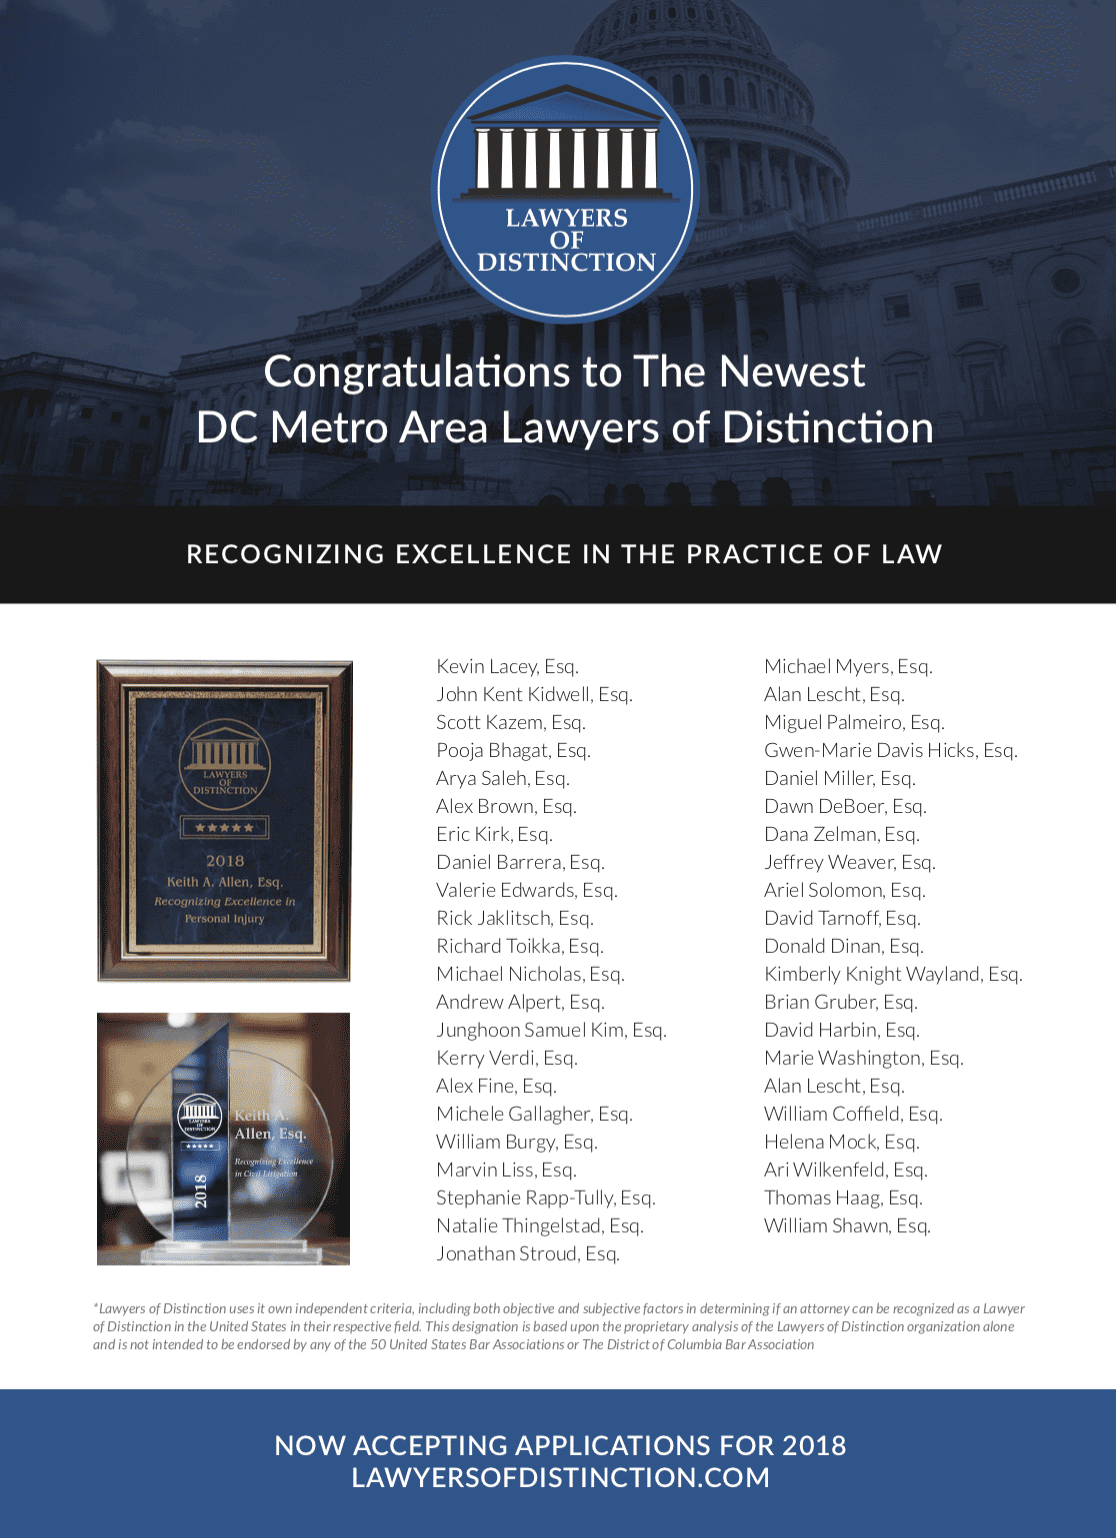 Lawyers of Distinction Featured in Maryland State Bar Journal